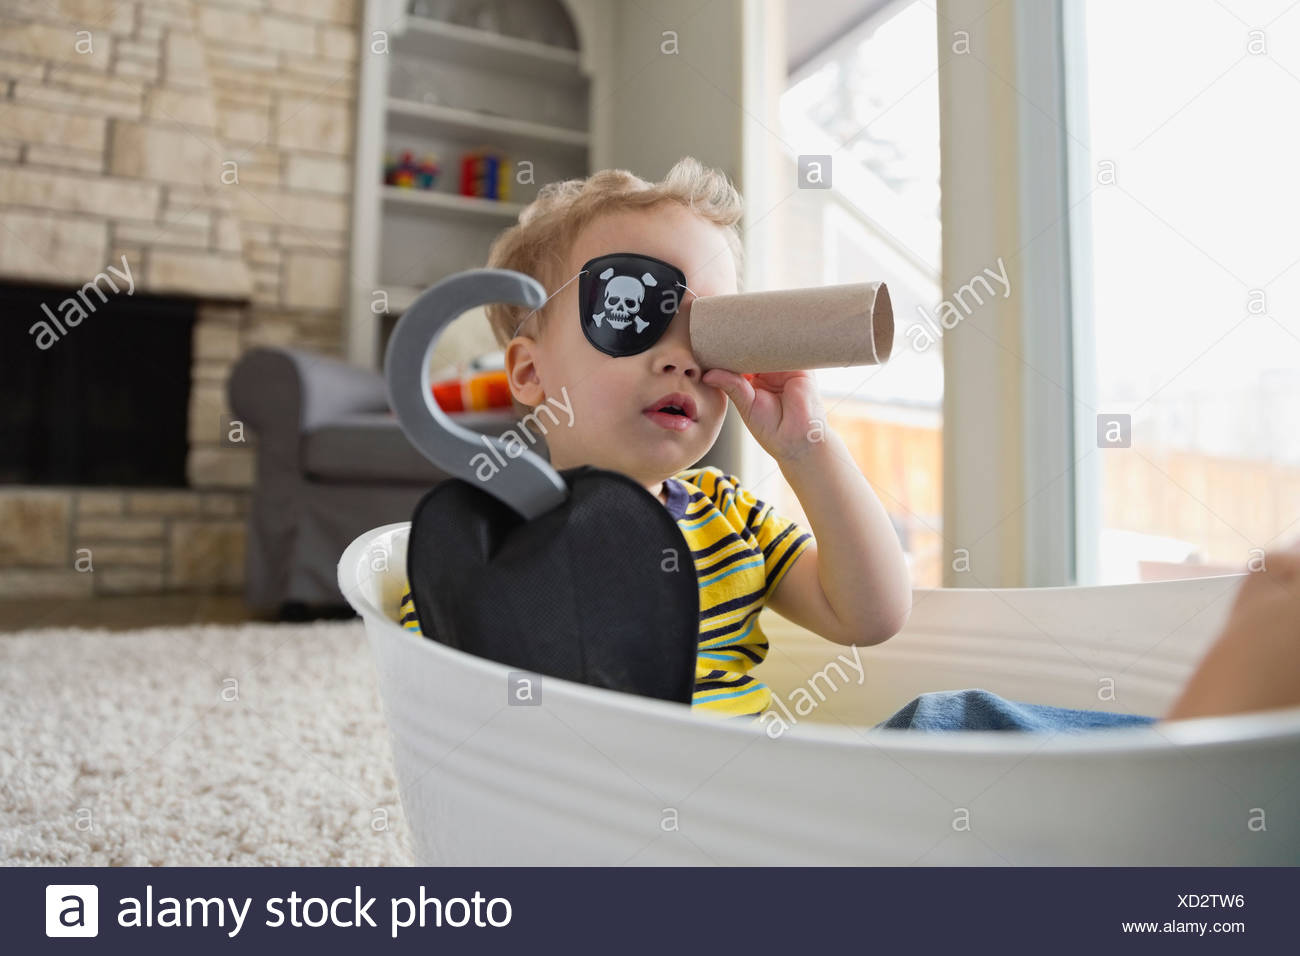 Little boy pretending to be a pirate - Stock Image